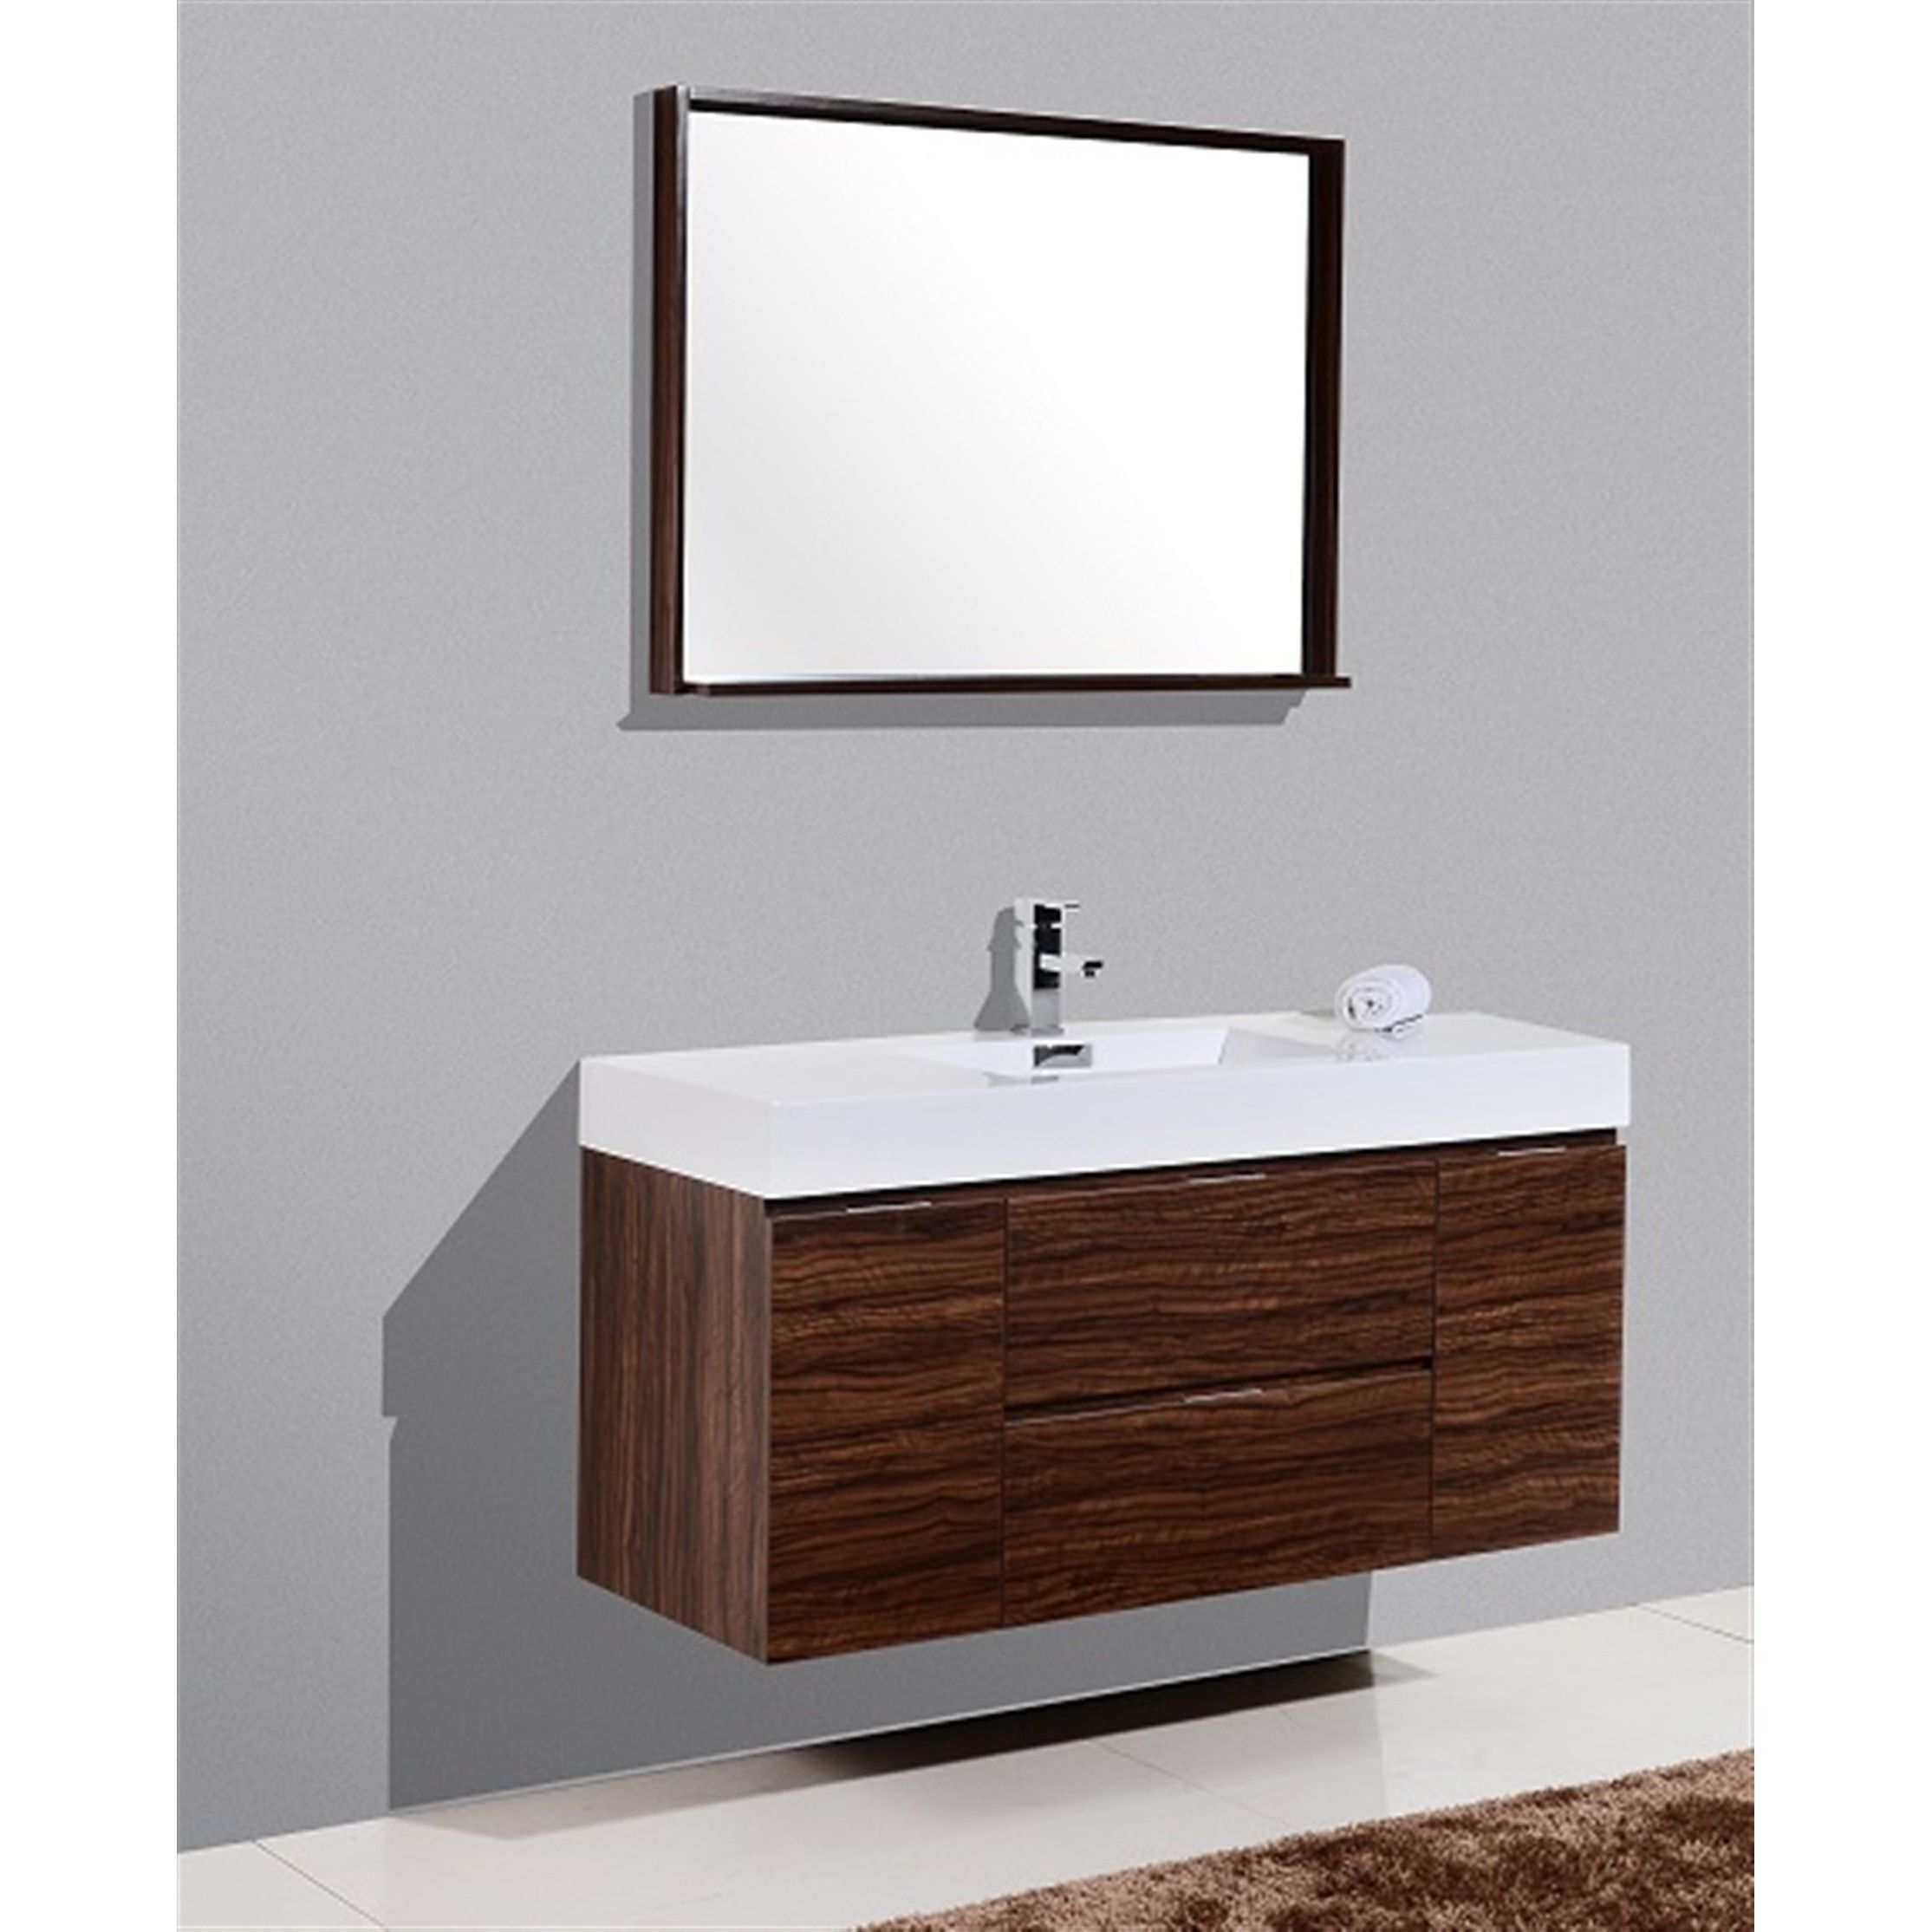 wall top get cabinet frosted double simple narrow with inch and mounted vanity ideas furniture bathroom also bowl sink black ba drawers full wooden white faucet gray vanities granite sinks modern interior size space to plus doors of more stores s